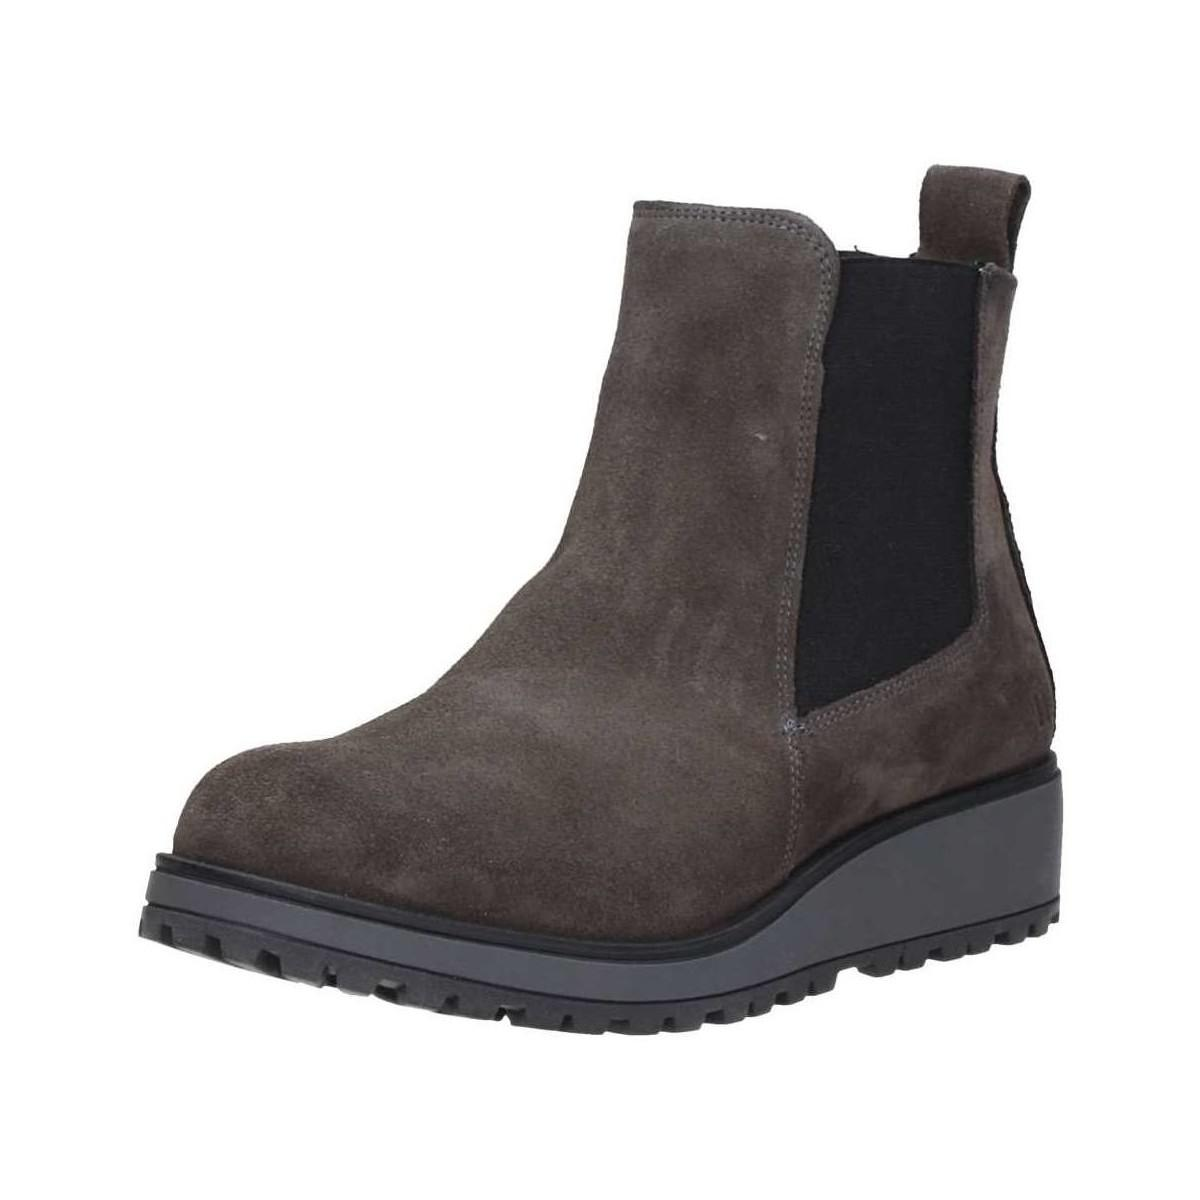 Lumberjack Sw21903 001 a01 Ankle Boots Women's Low Ankle